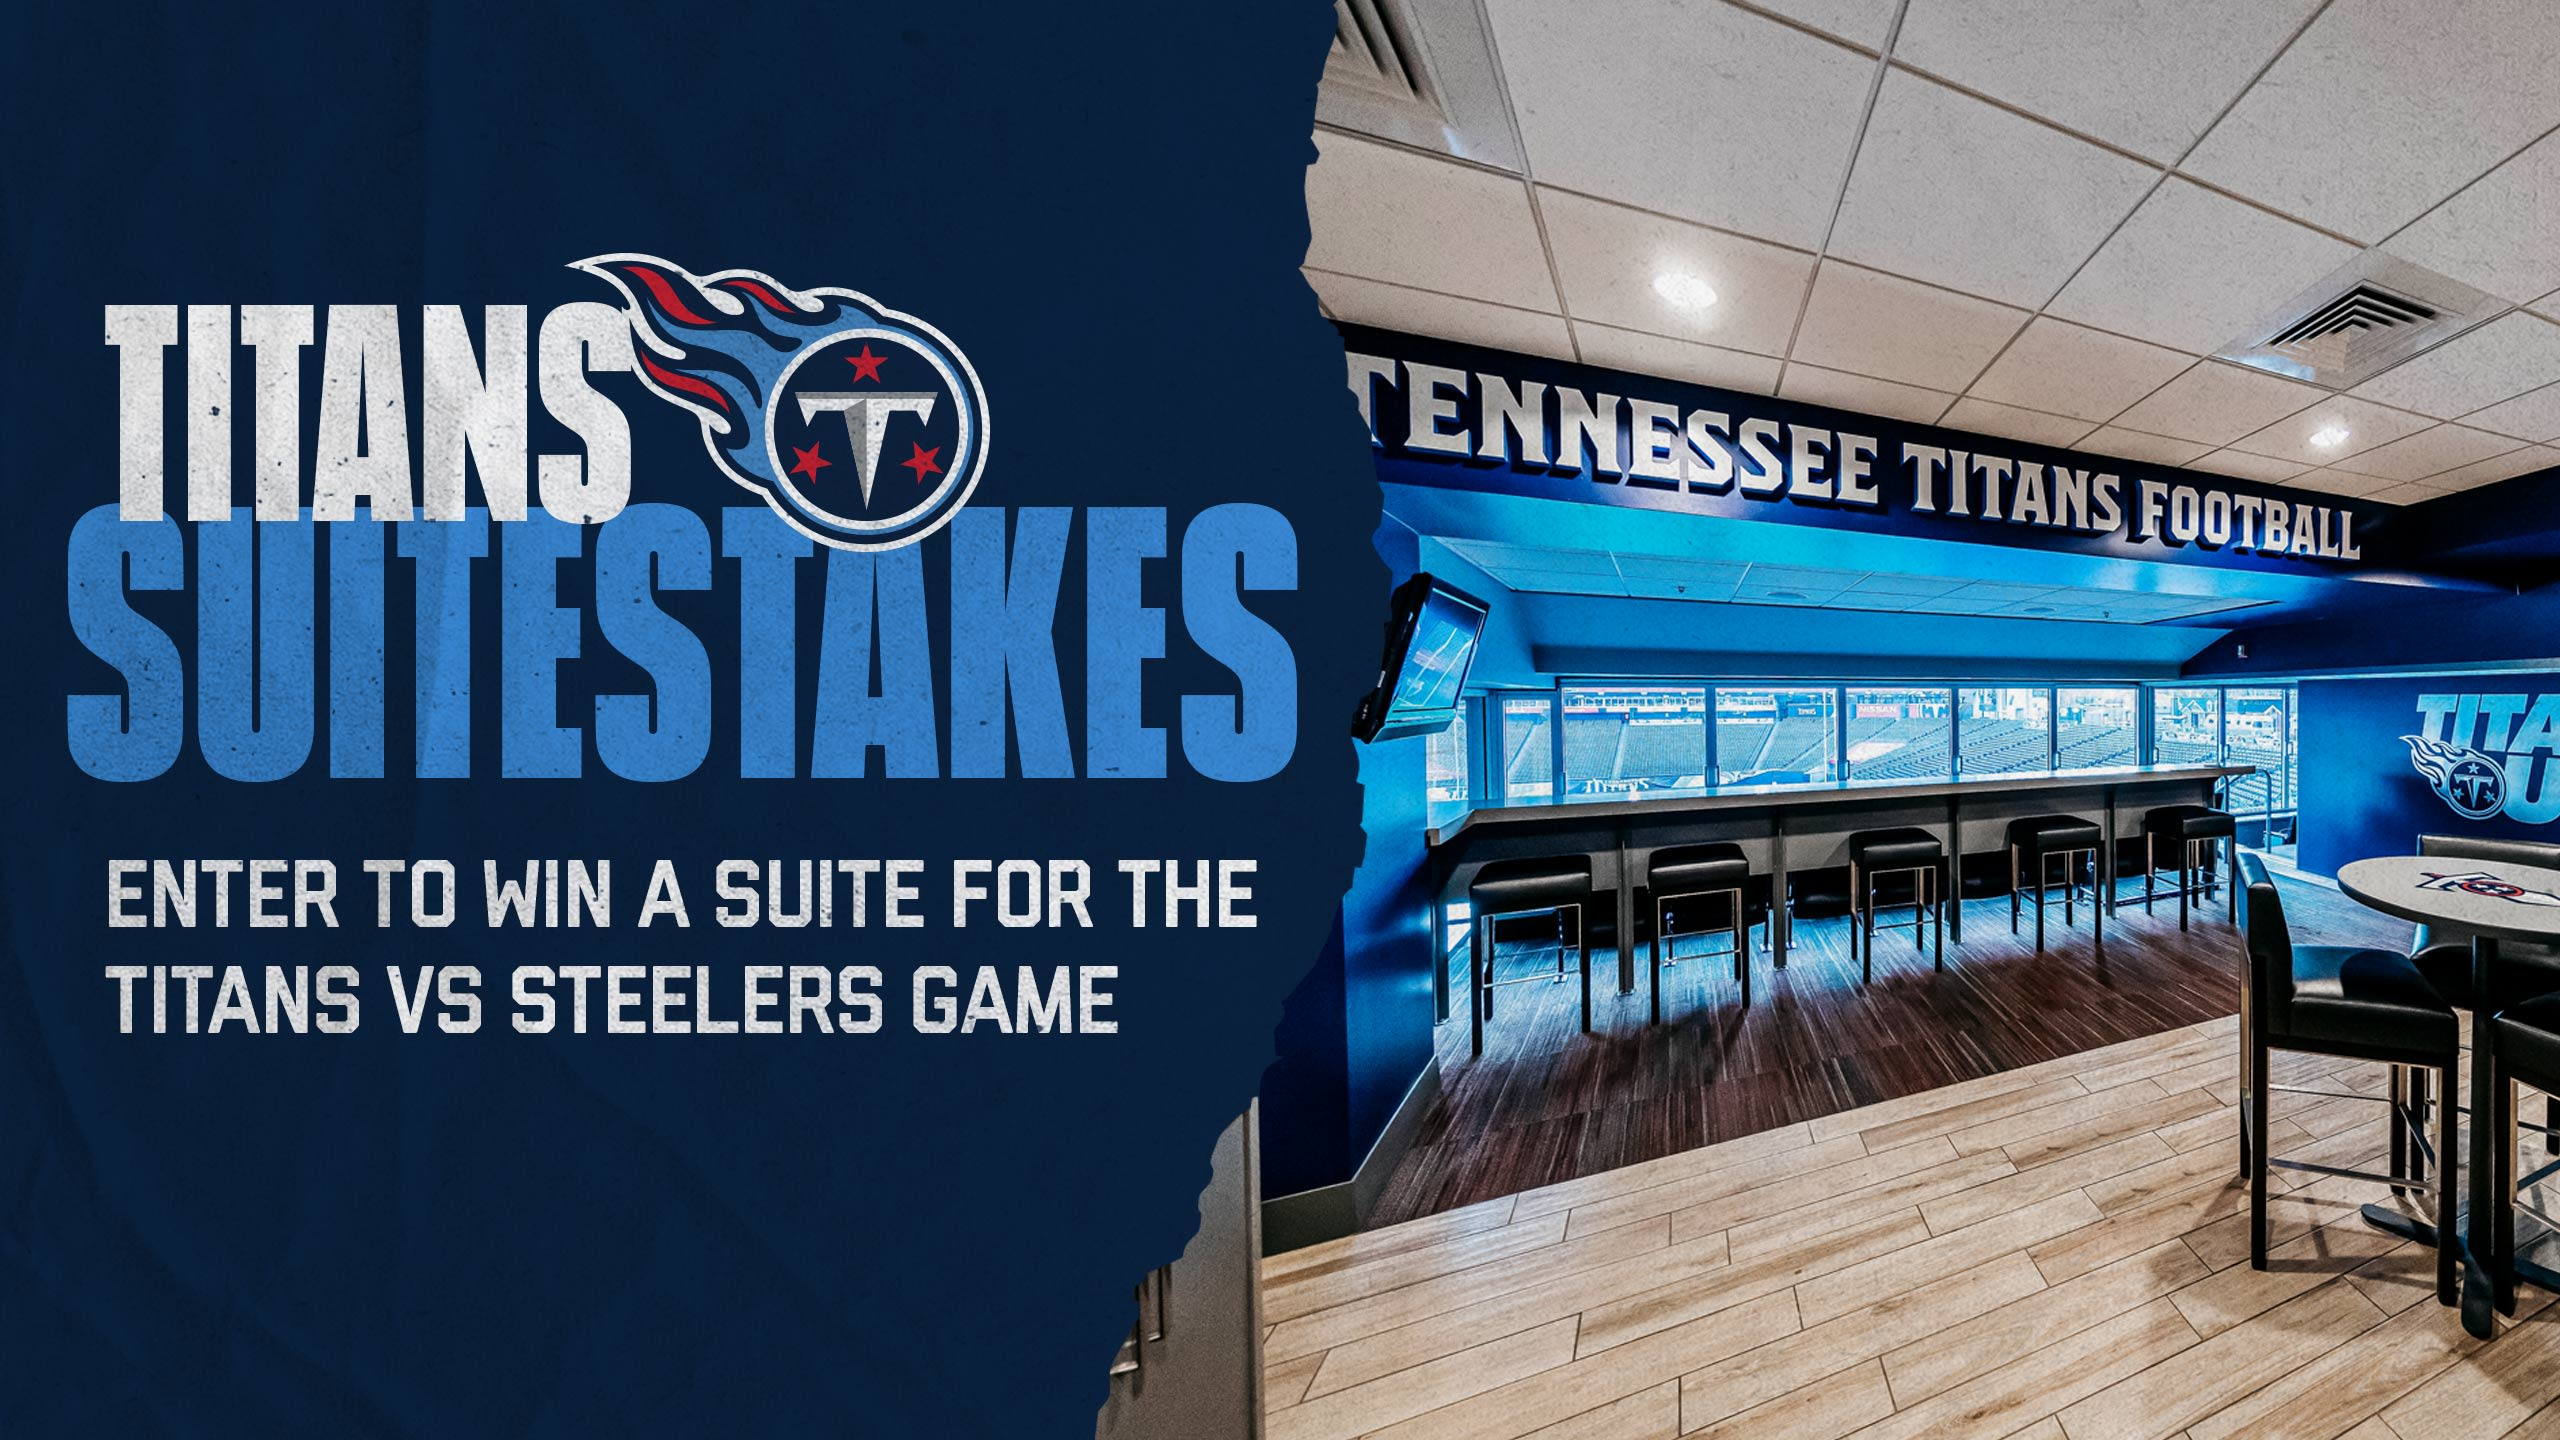 Win a Suite for Titans vs Steelers!